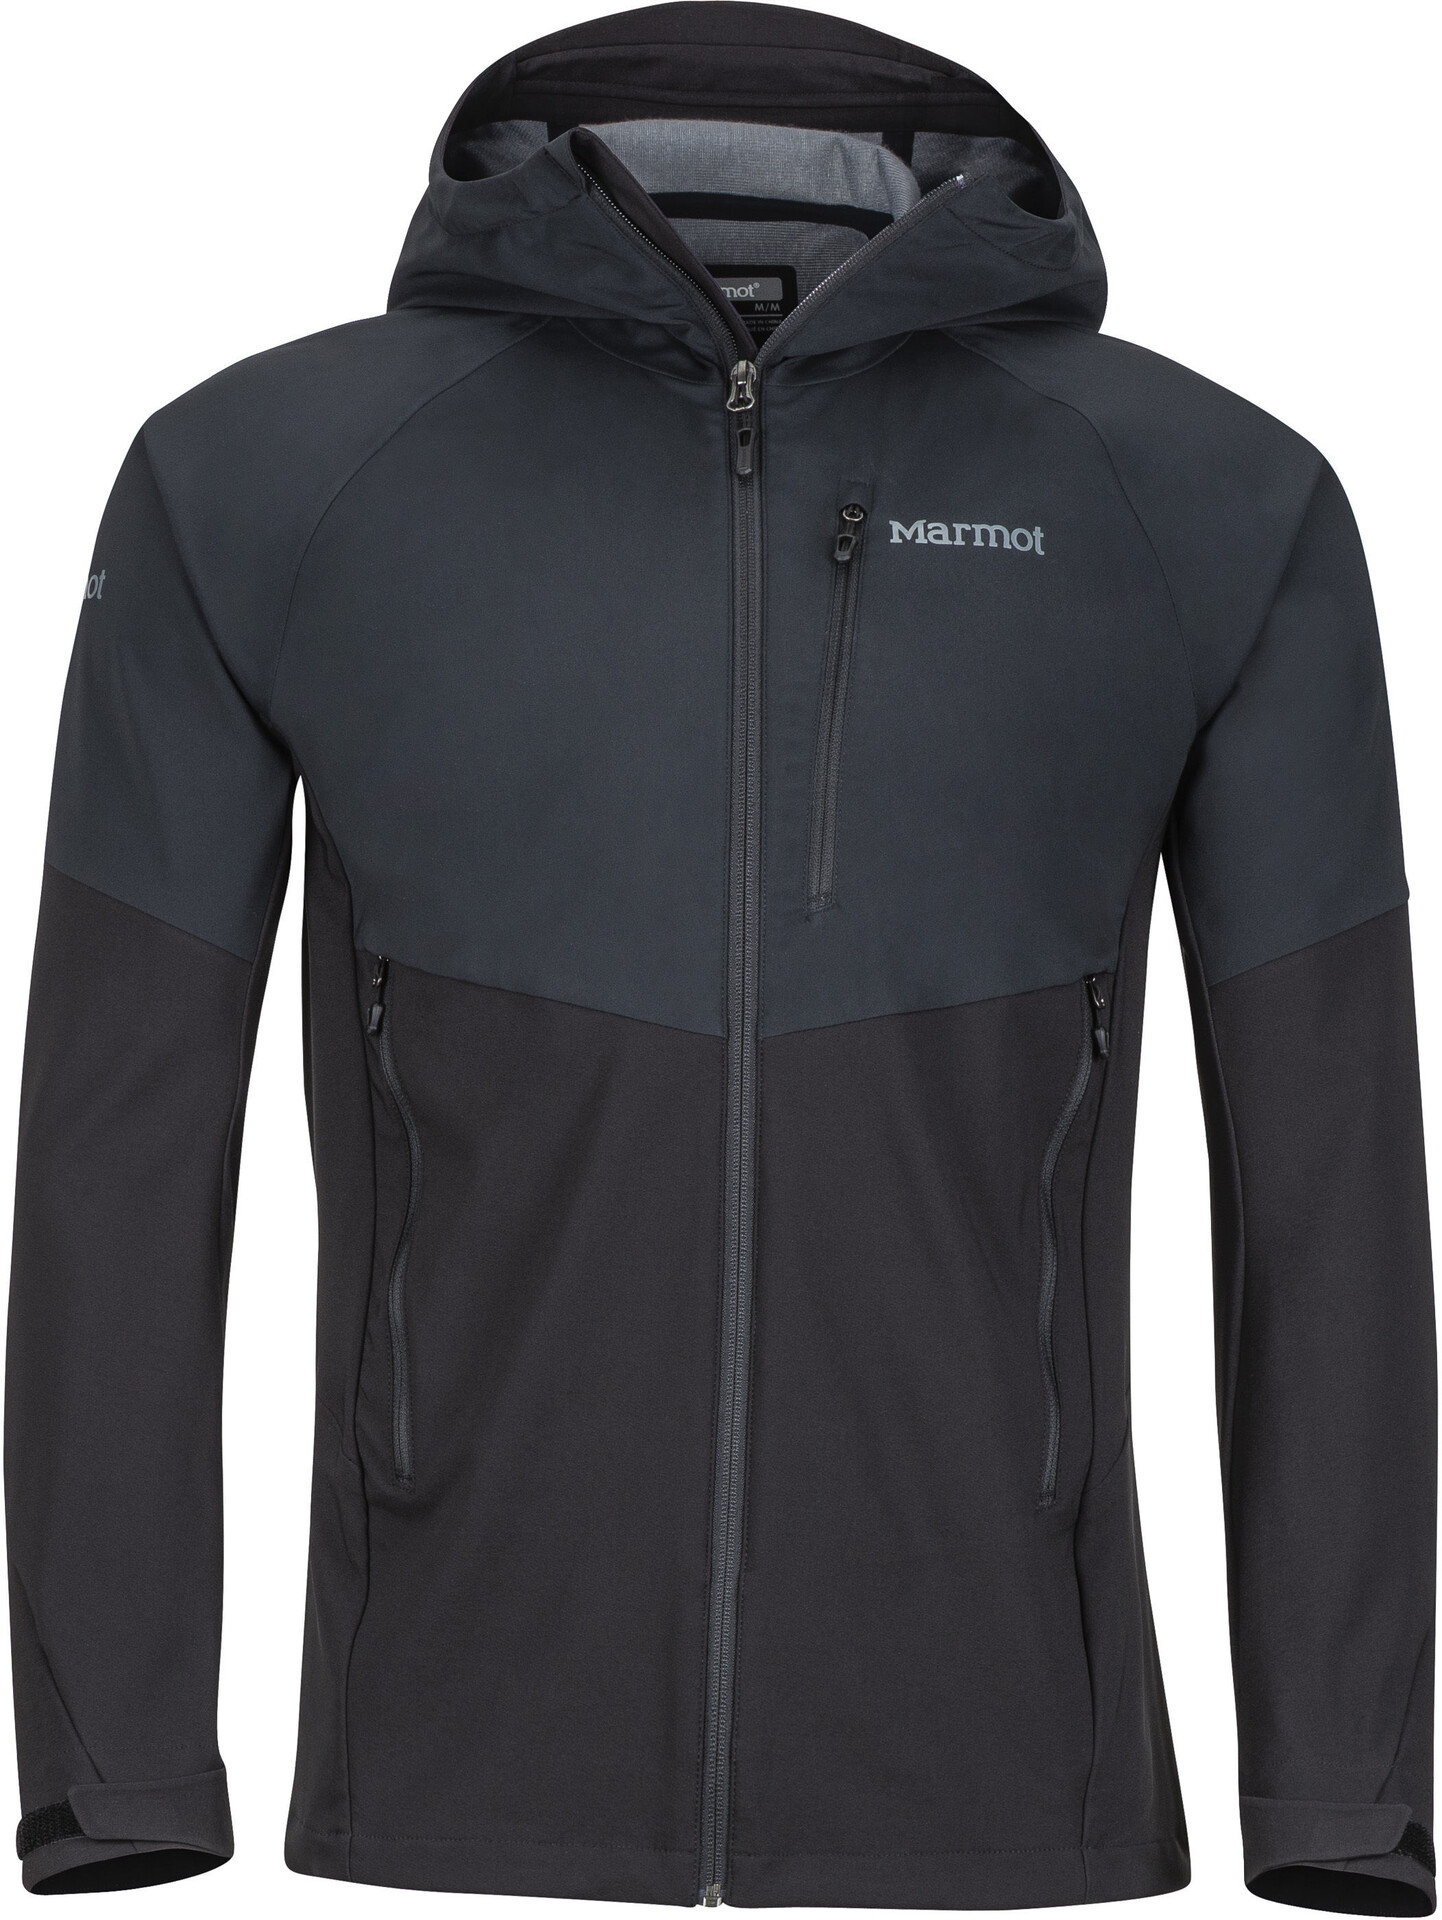 jpe4d11e8 this hydration jacket from rom outdoors keeps you